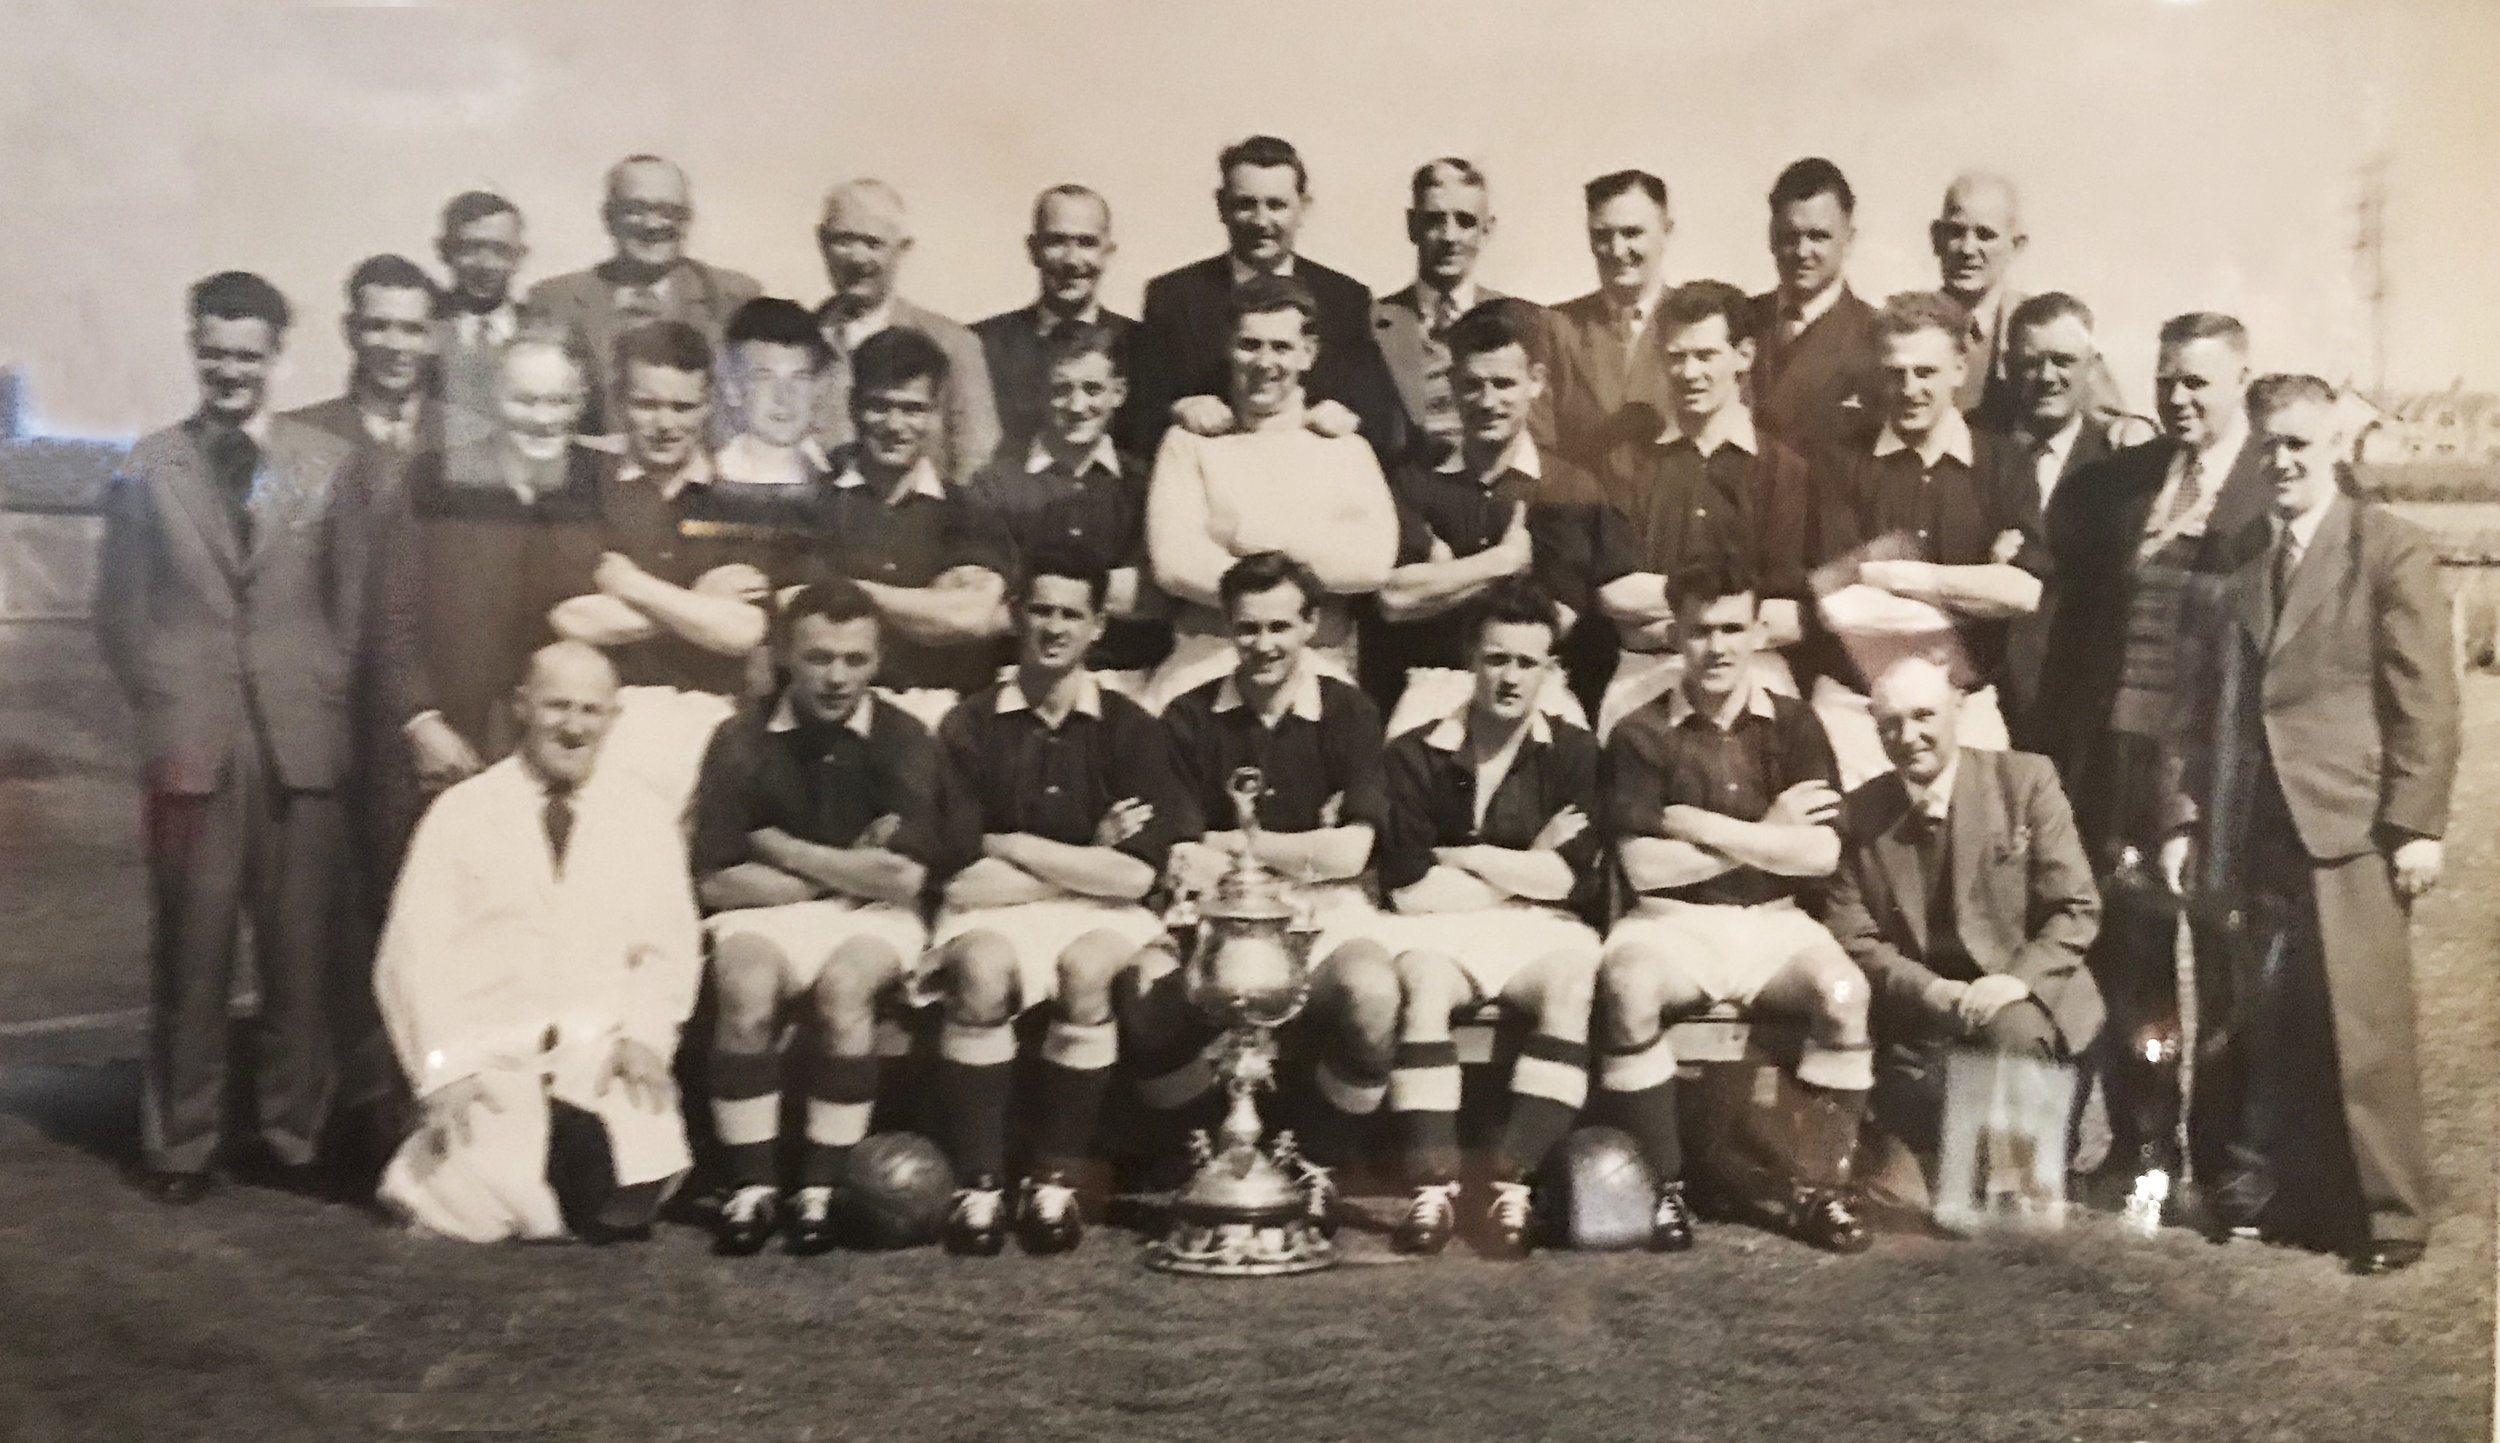 The team that won the Aberdeenshire Cup in 1957-58